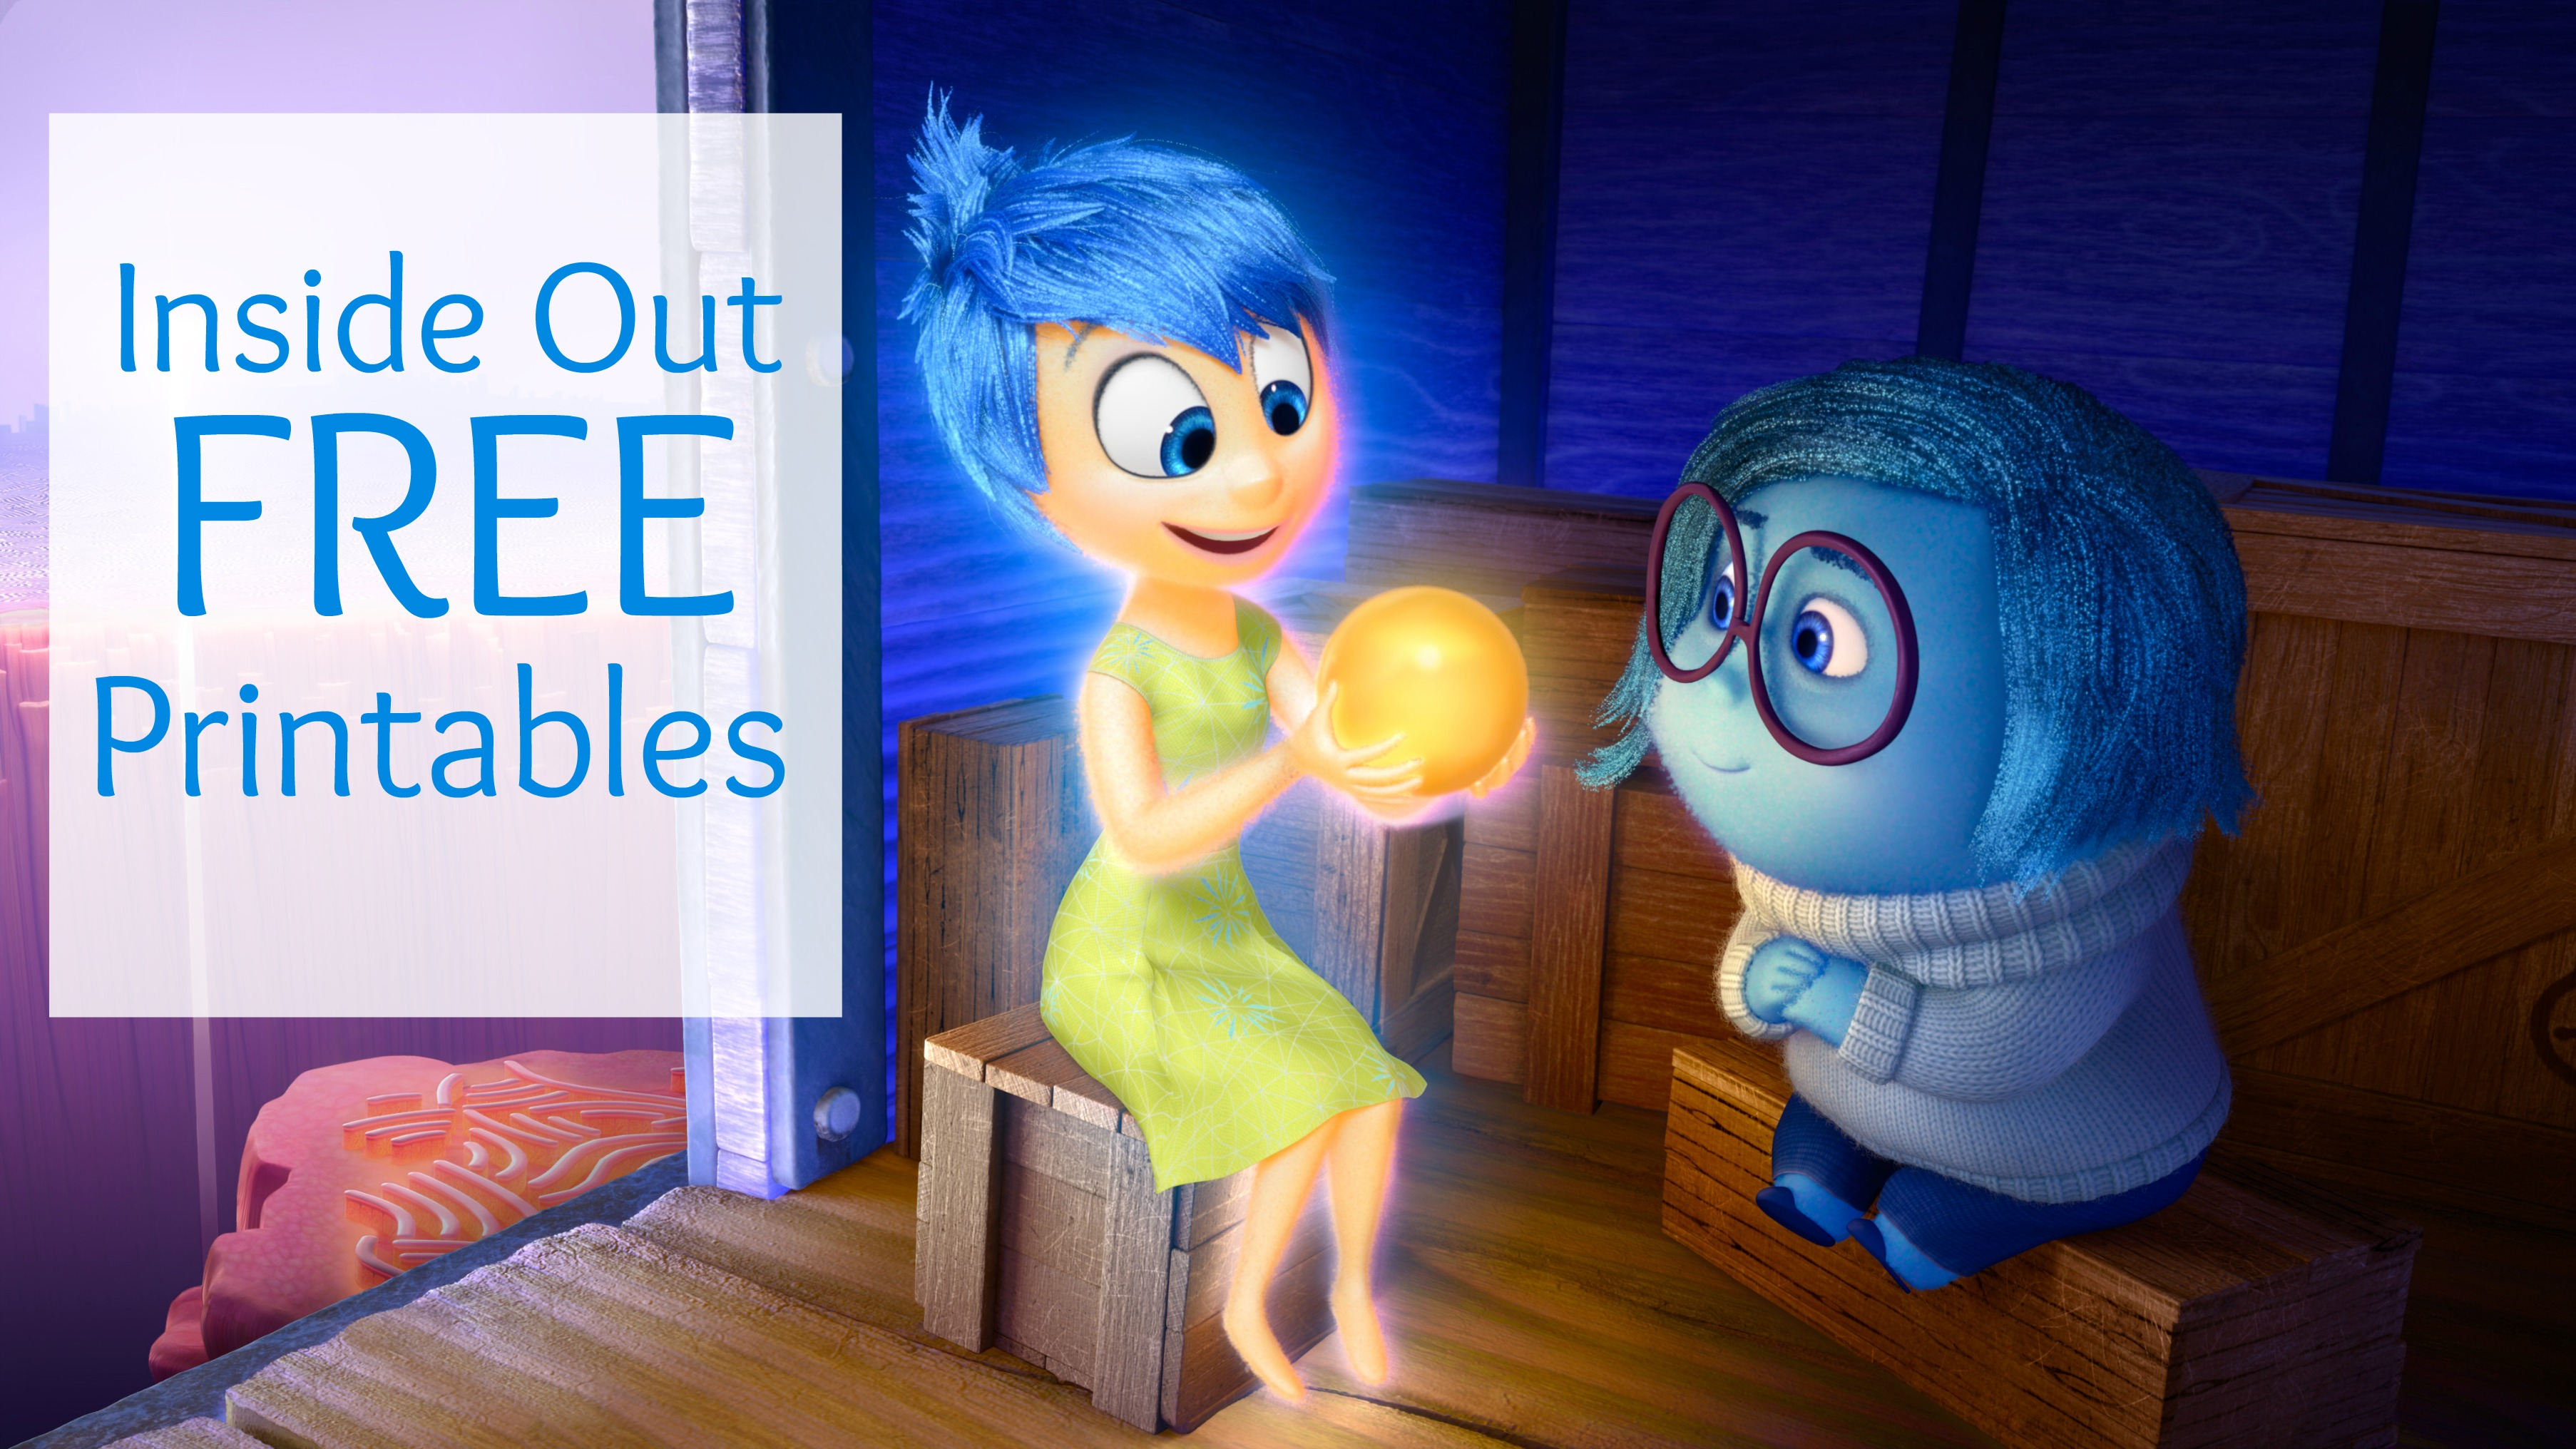 Disney coloring inside out - Disney Coloring Inside Out Inside Out Free Printables